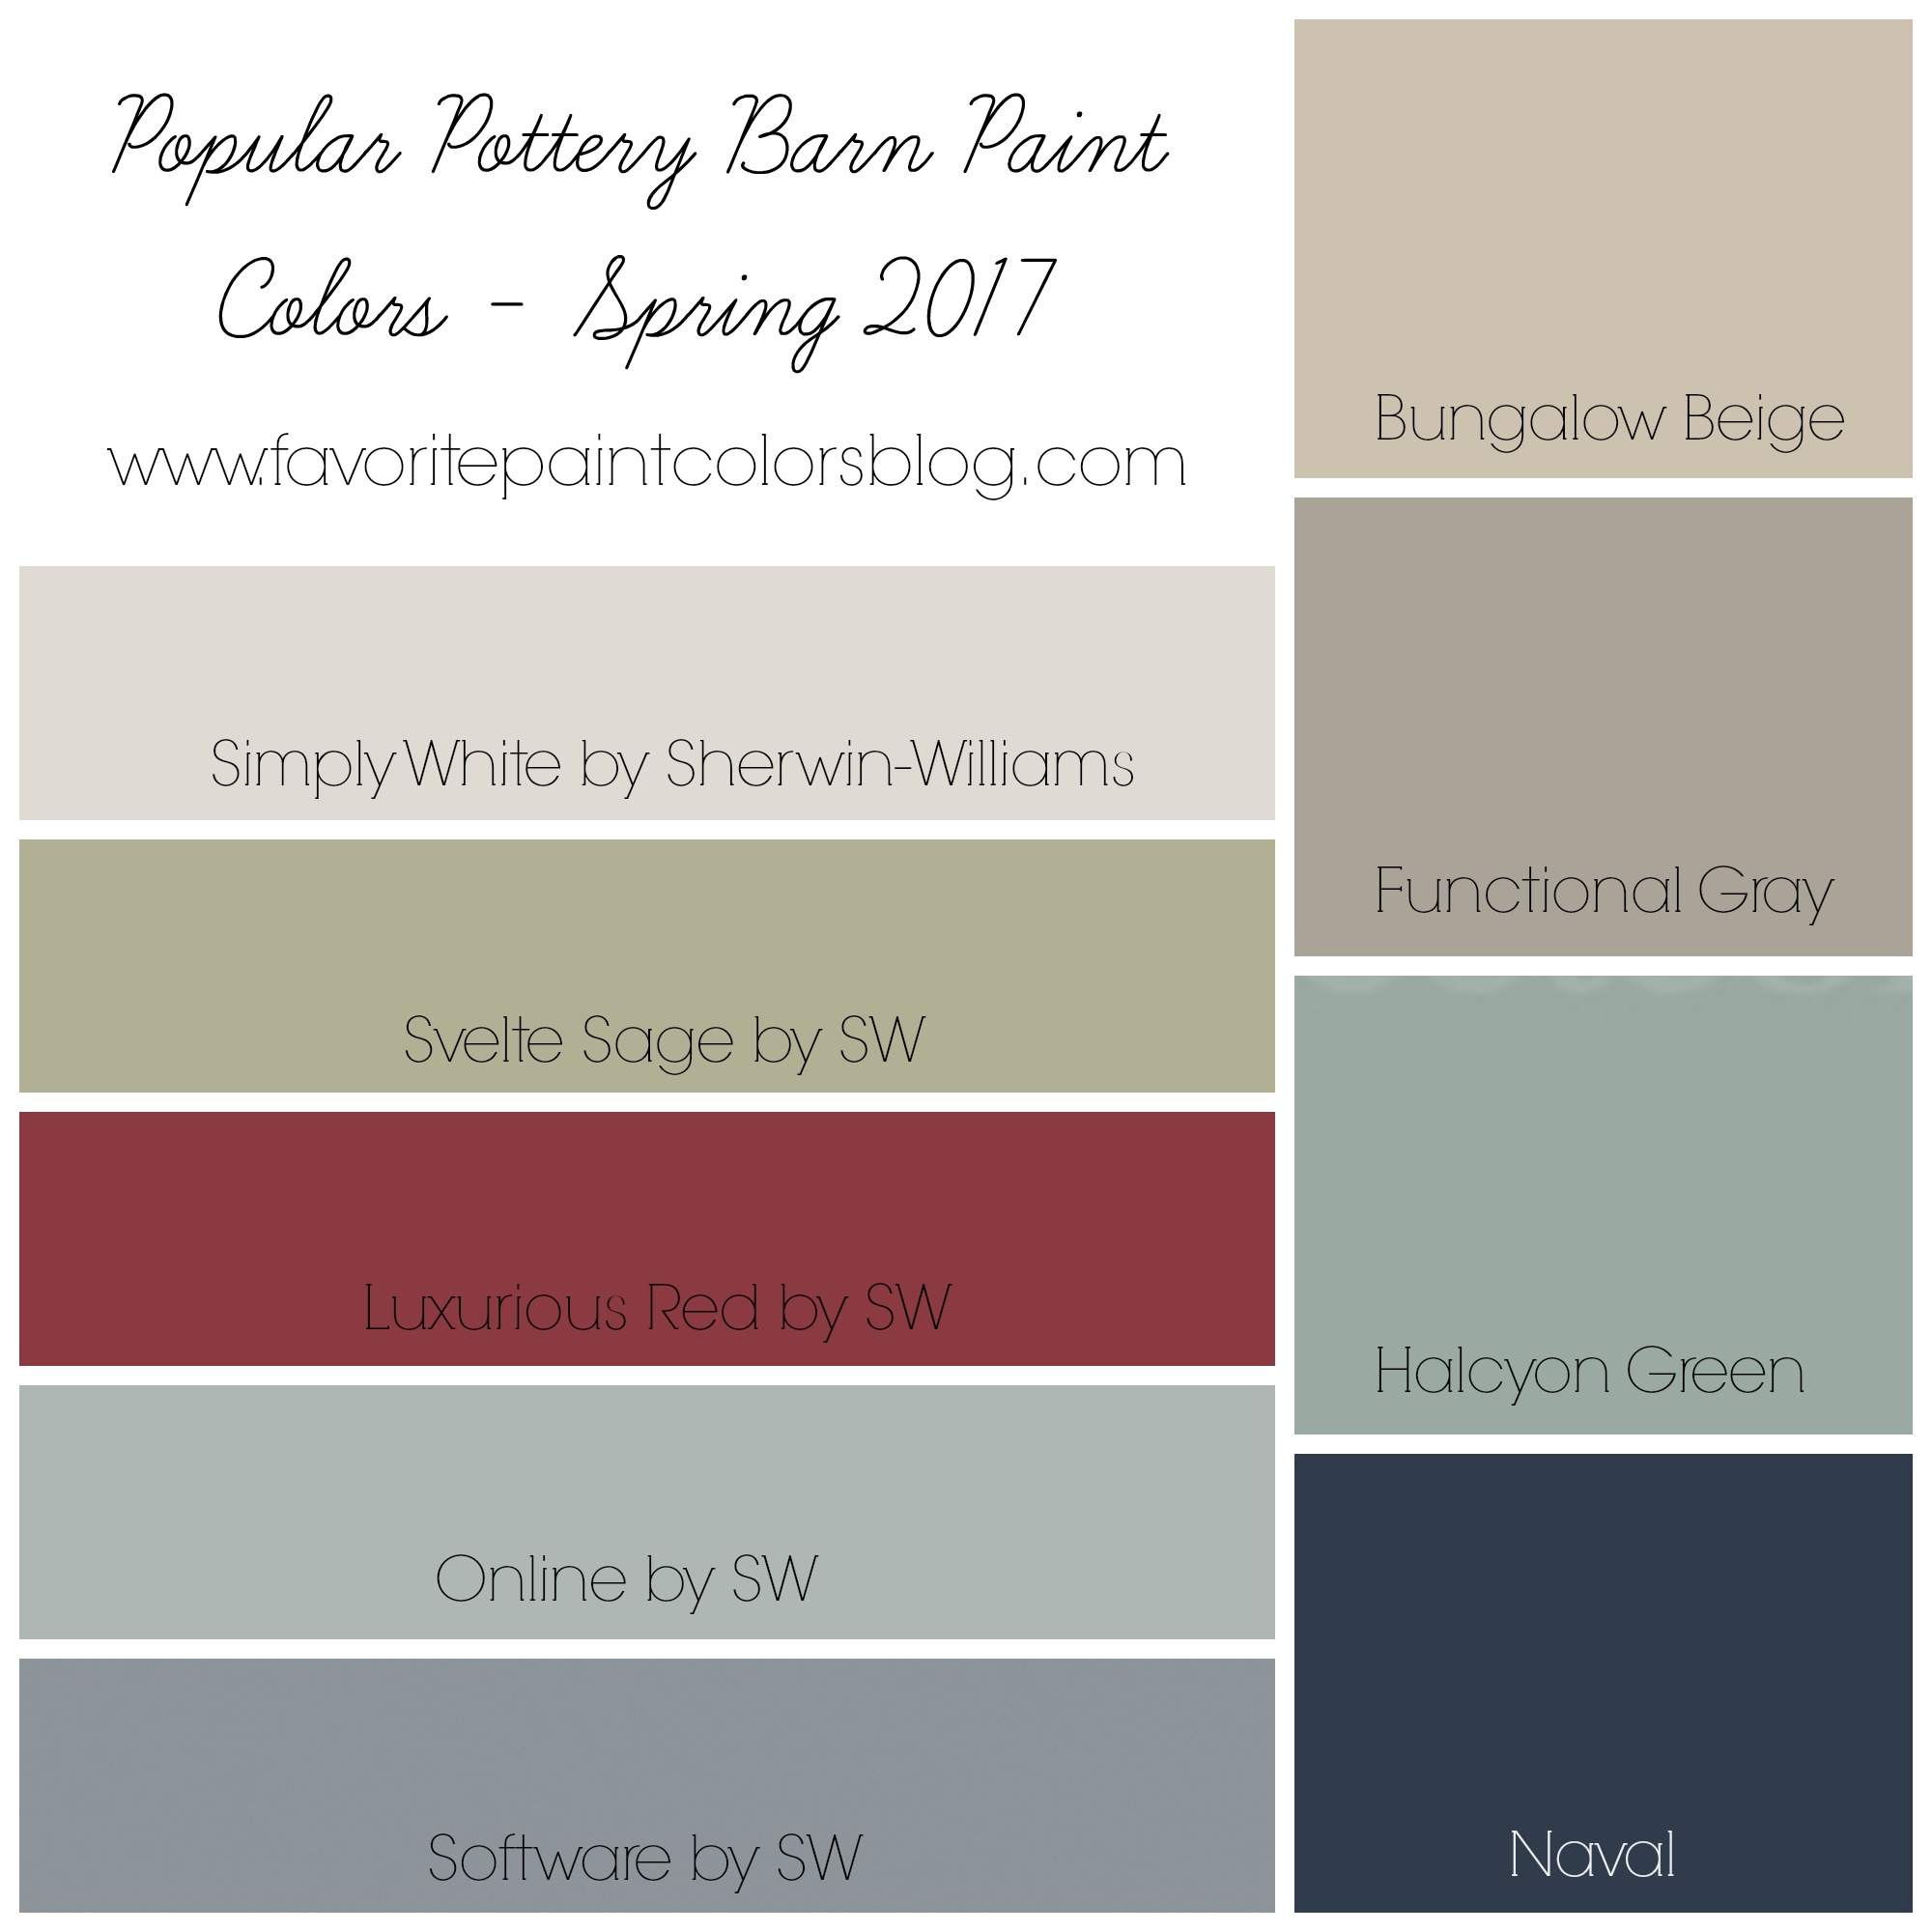 Most Popular Paint Colors Popular Pottery Barn Paint Colors  Favorite Paint Colors Blog